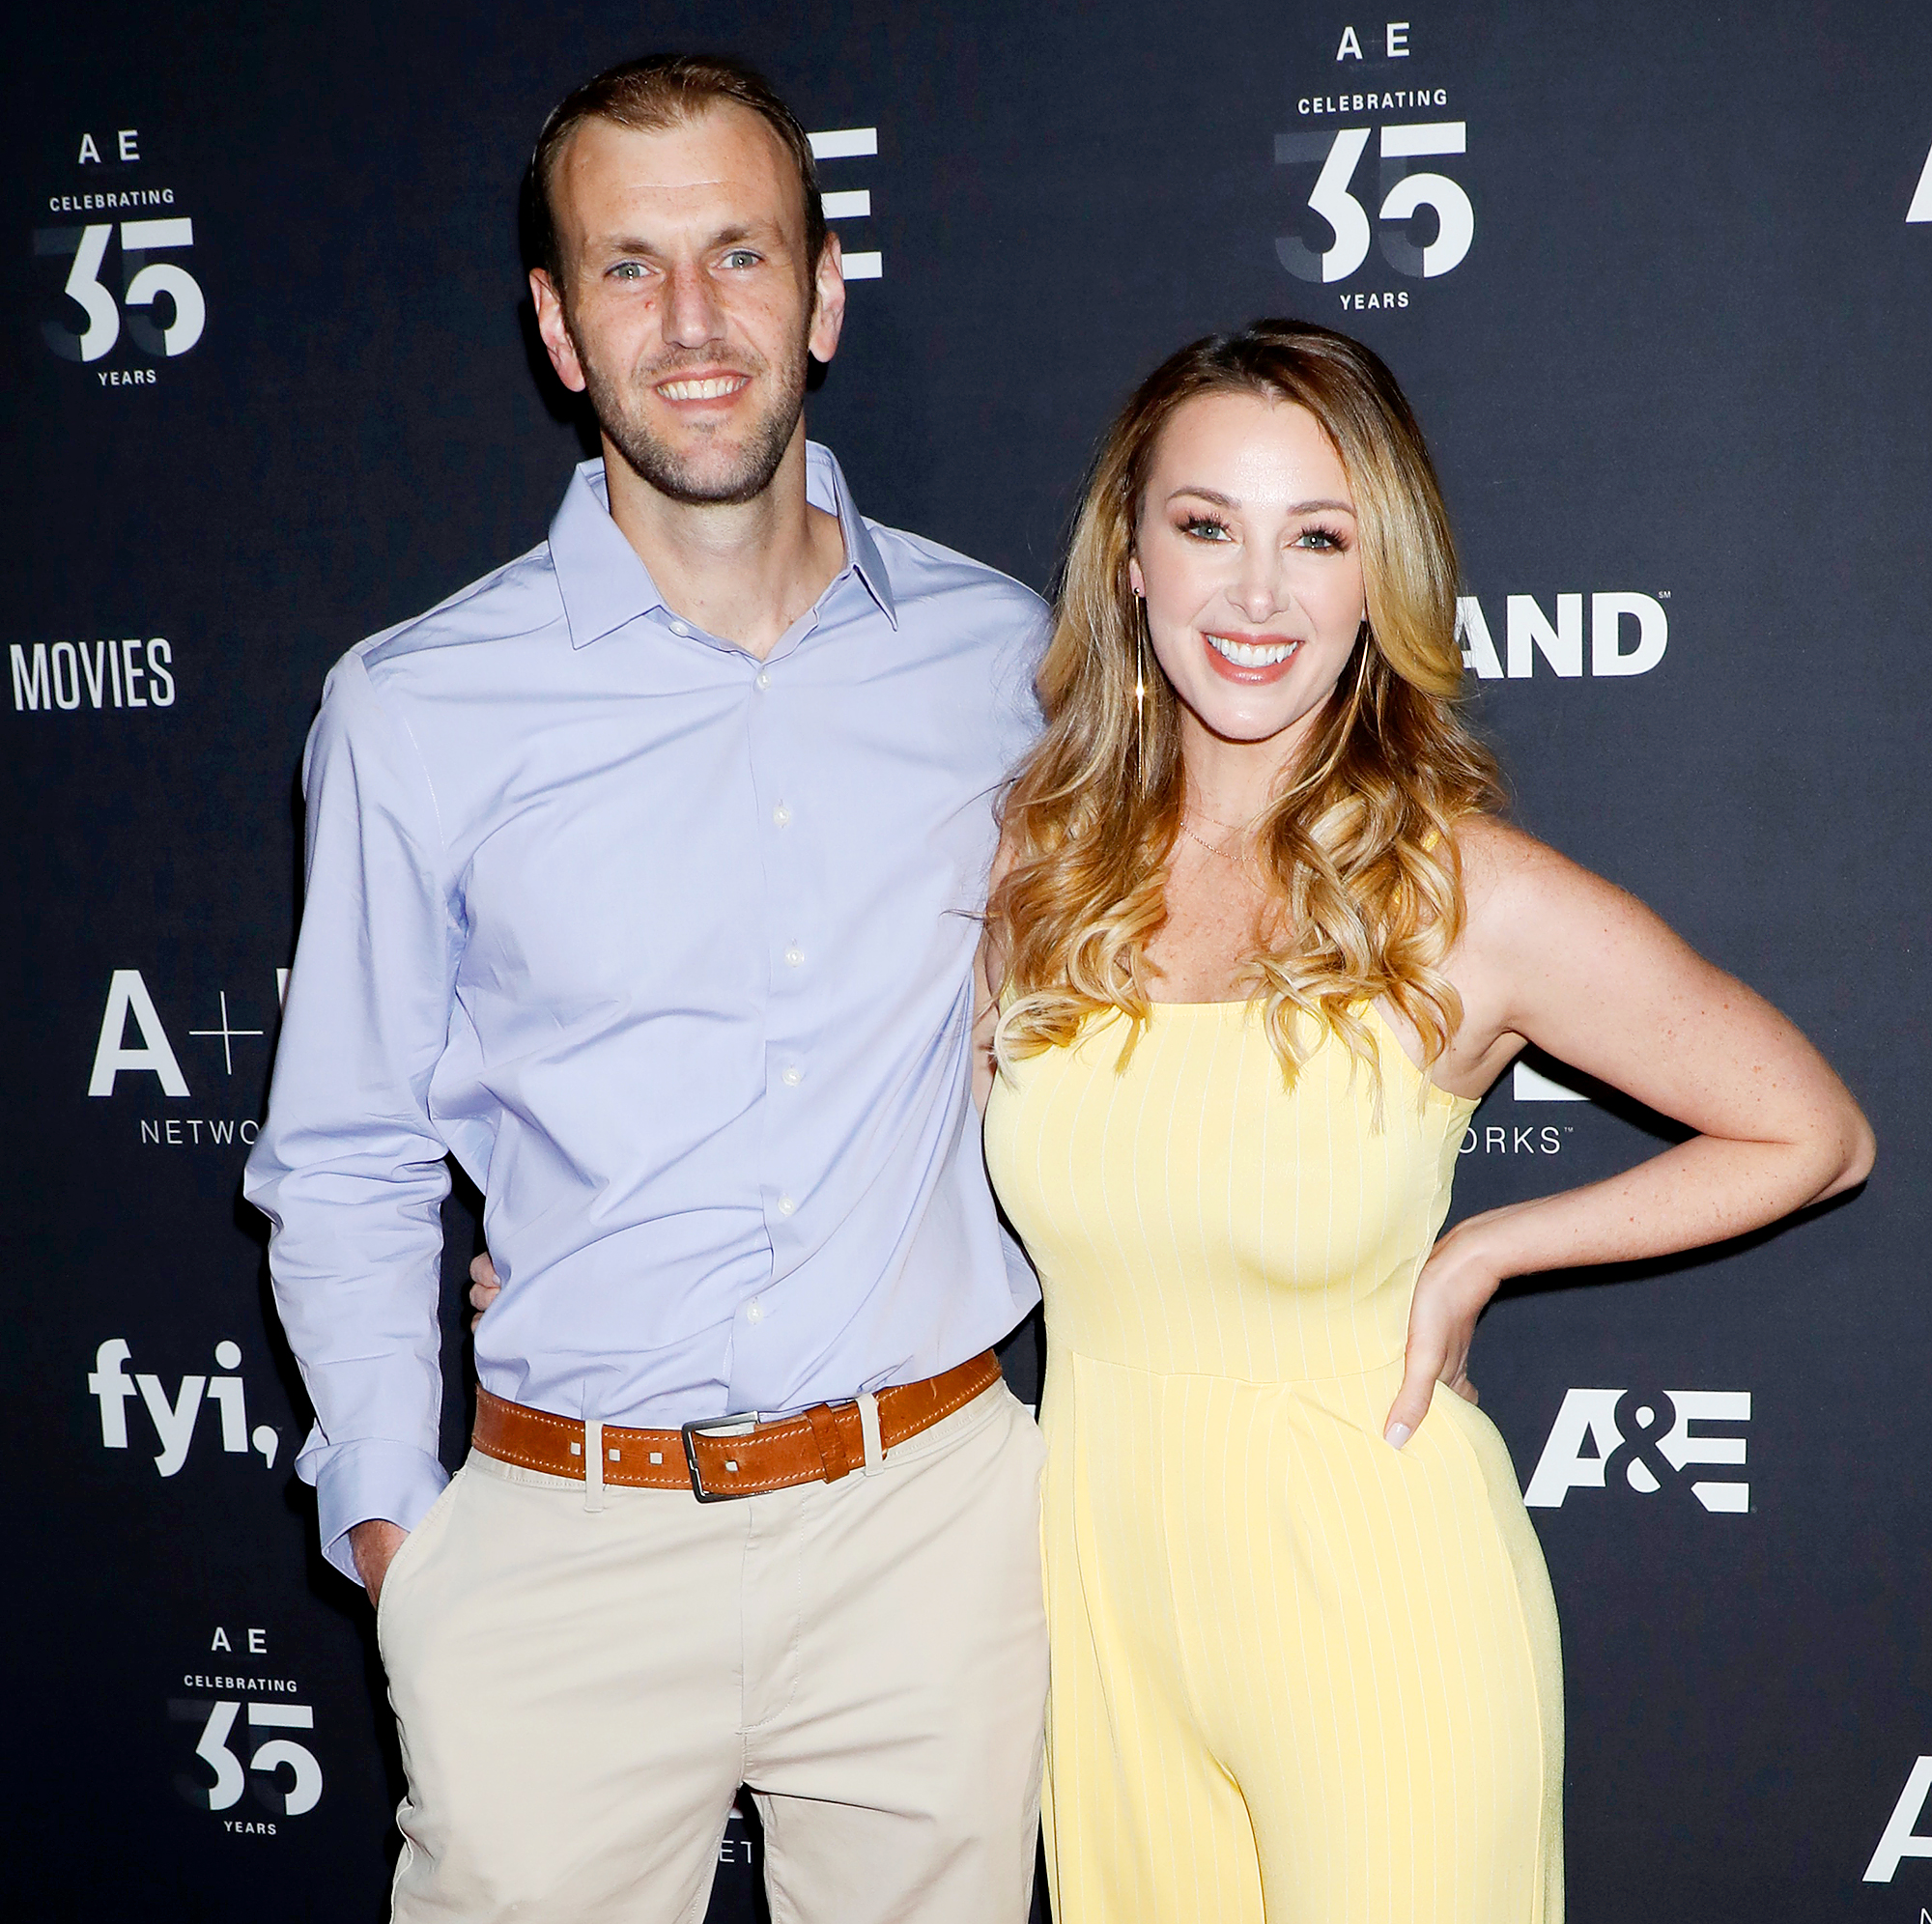 Pregnant-Jamie-Otis-and-Doug-Hehner-Haven't-Had-Sex-in-2-Months